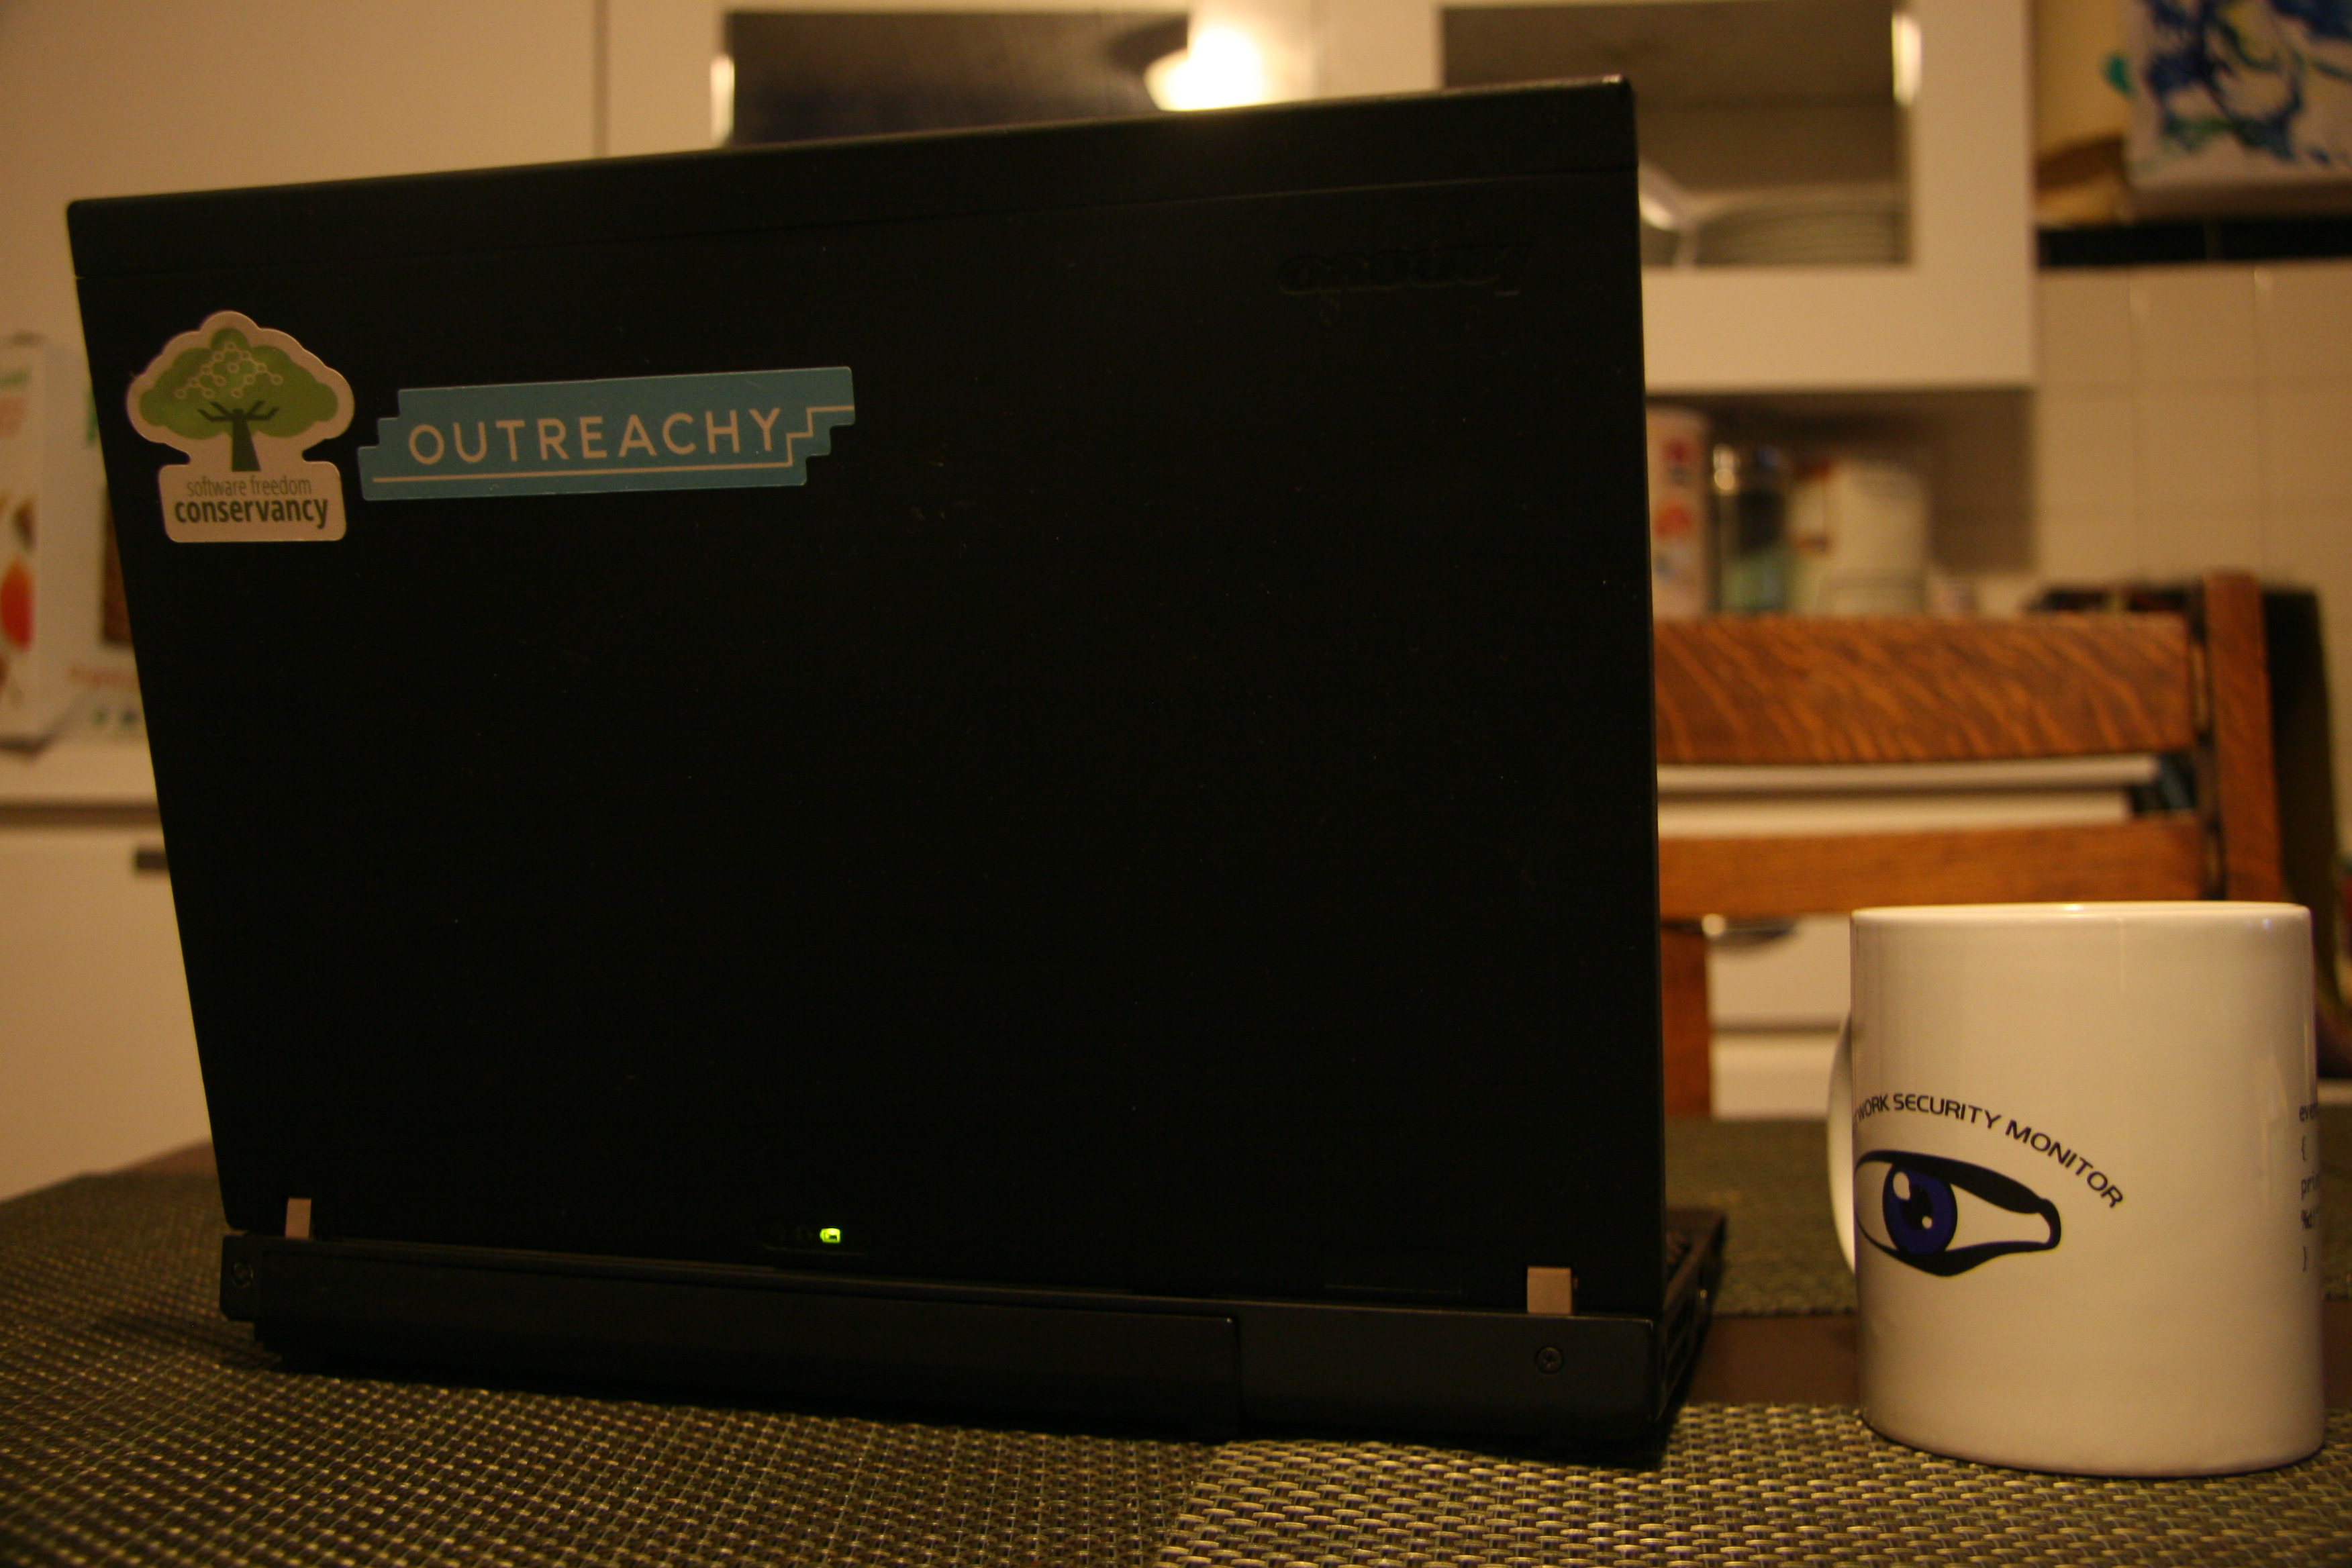 A laptop with Conservancy and Outreachy stickers, alongside a Bro mug